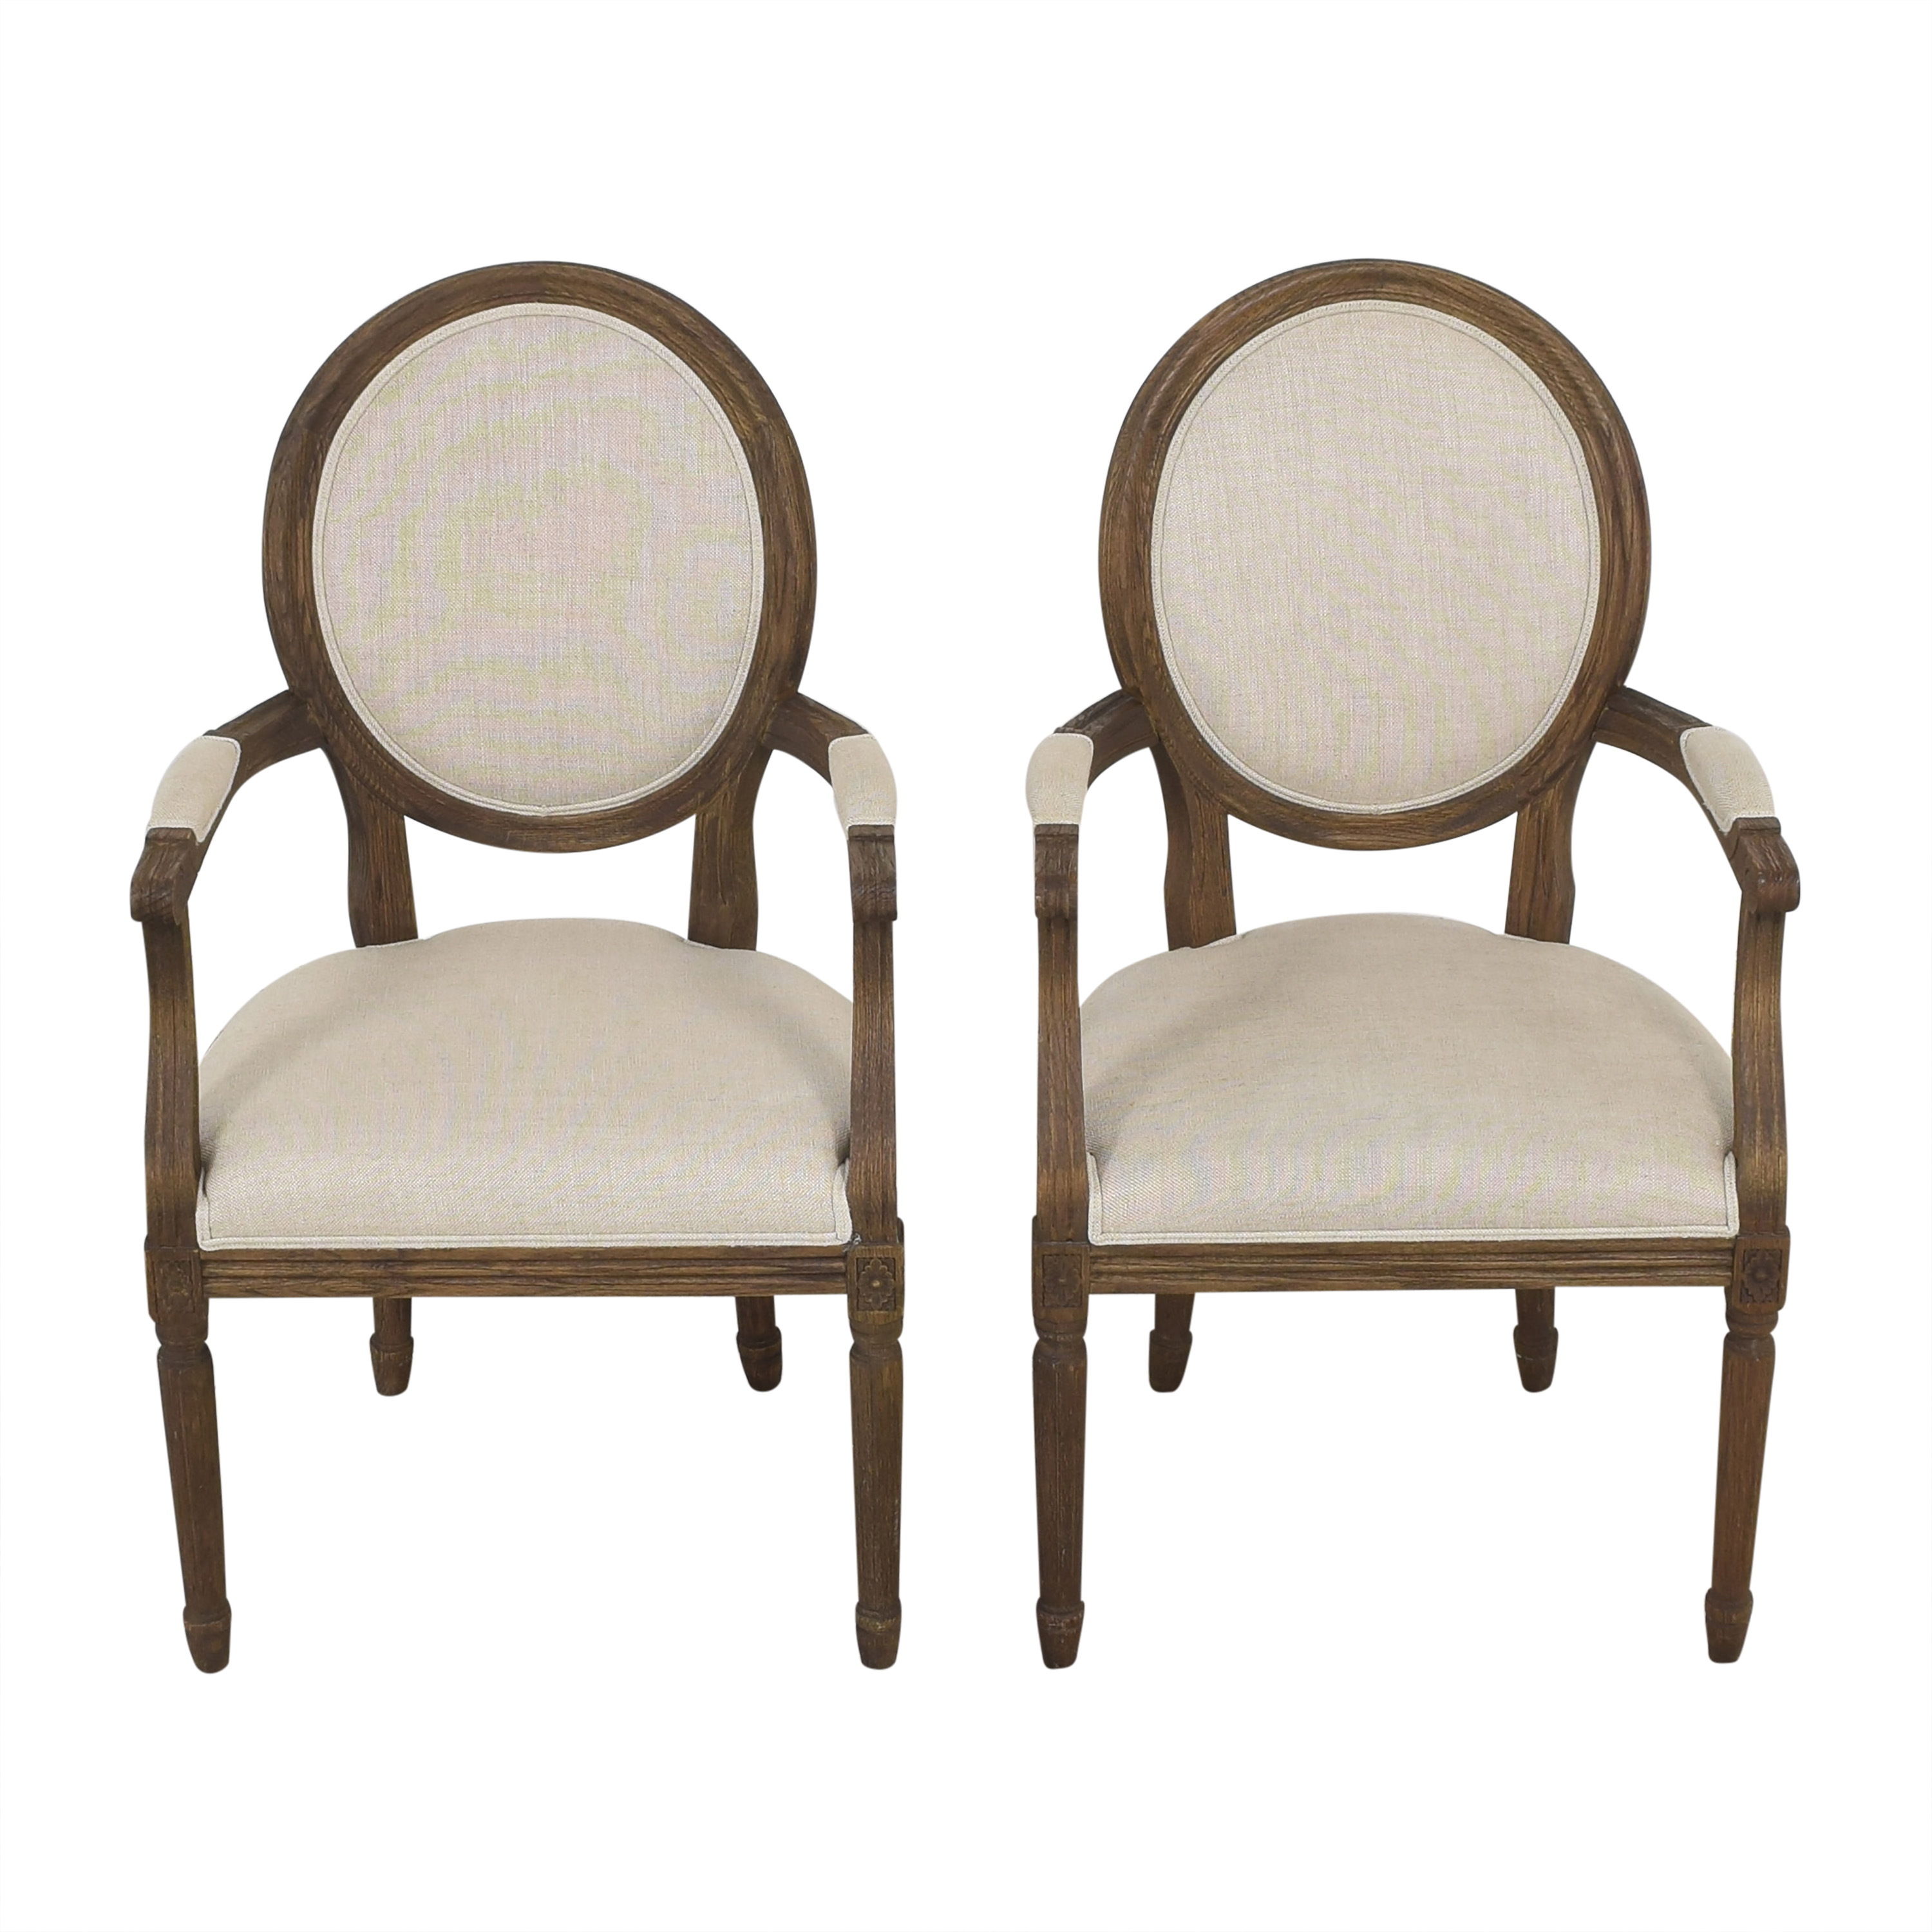 Restoration Hardware Restoration Hardware Vintage French Round Dining Arm Chairs pa